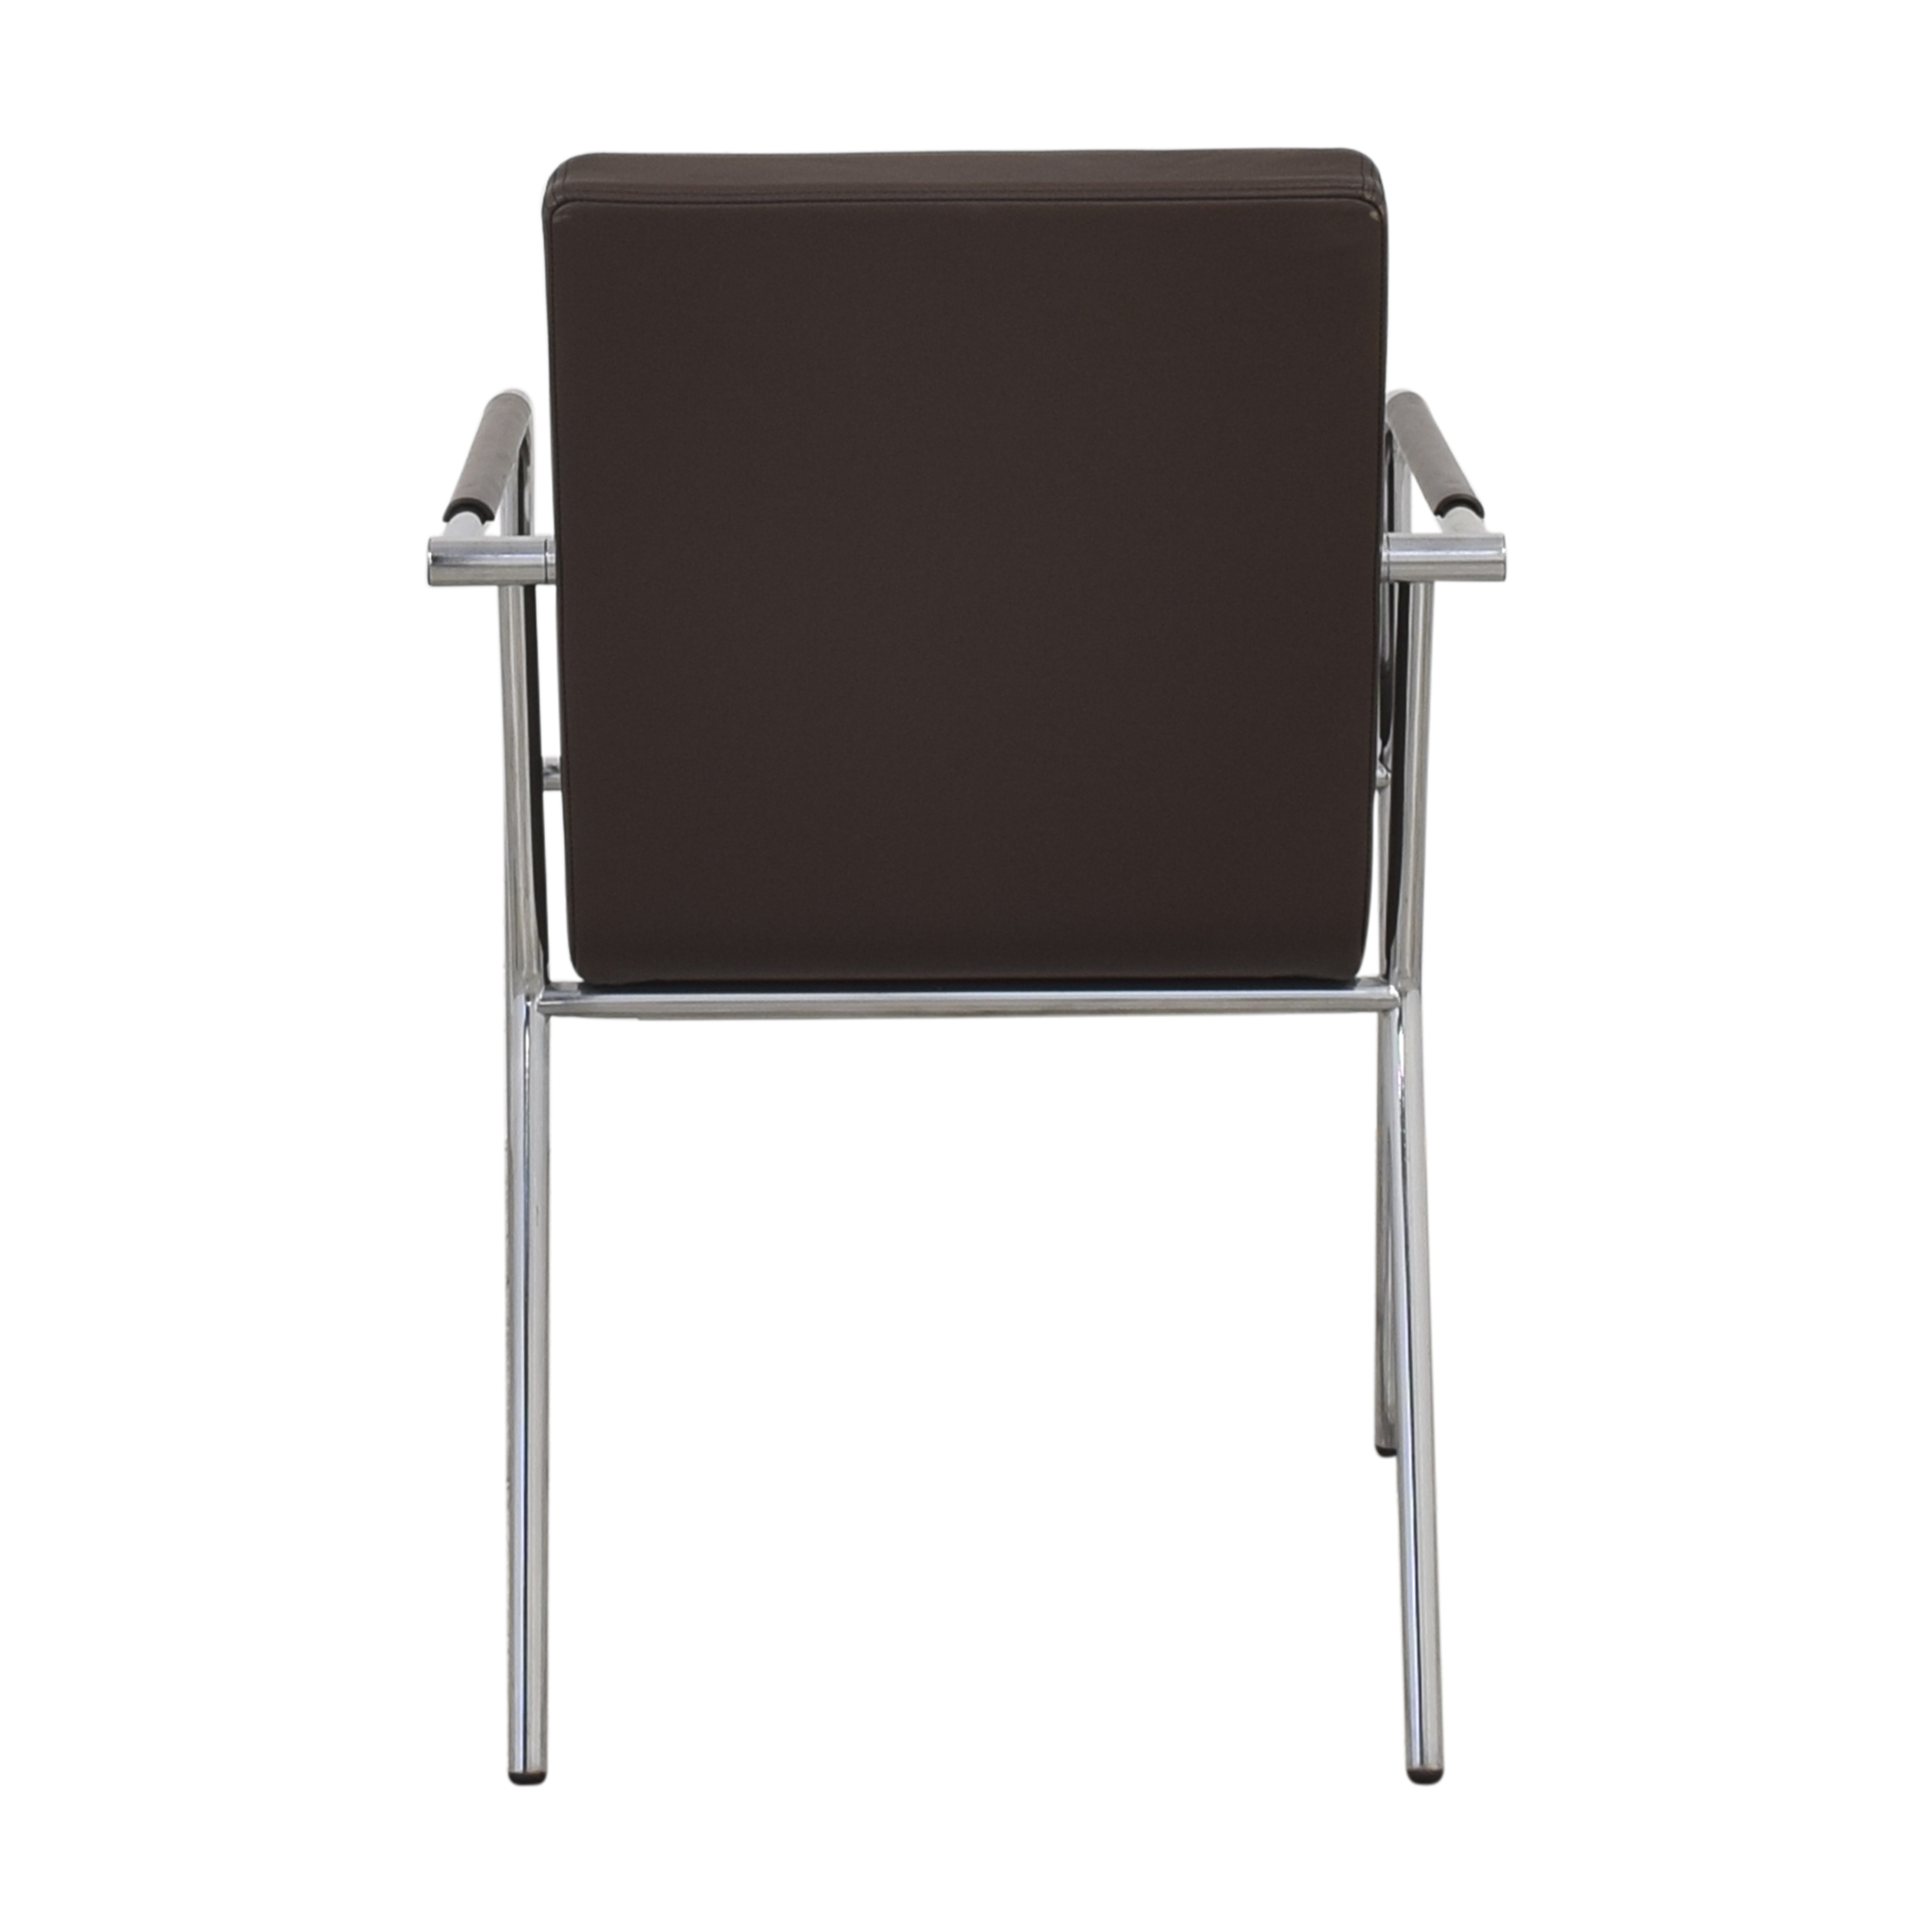 Malik Malik Portsmouth Stackable Armchair Chairs